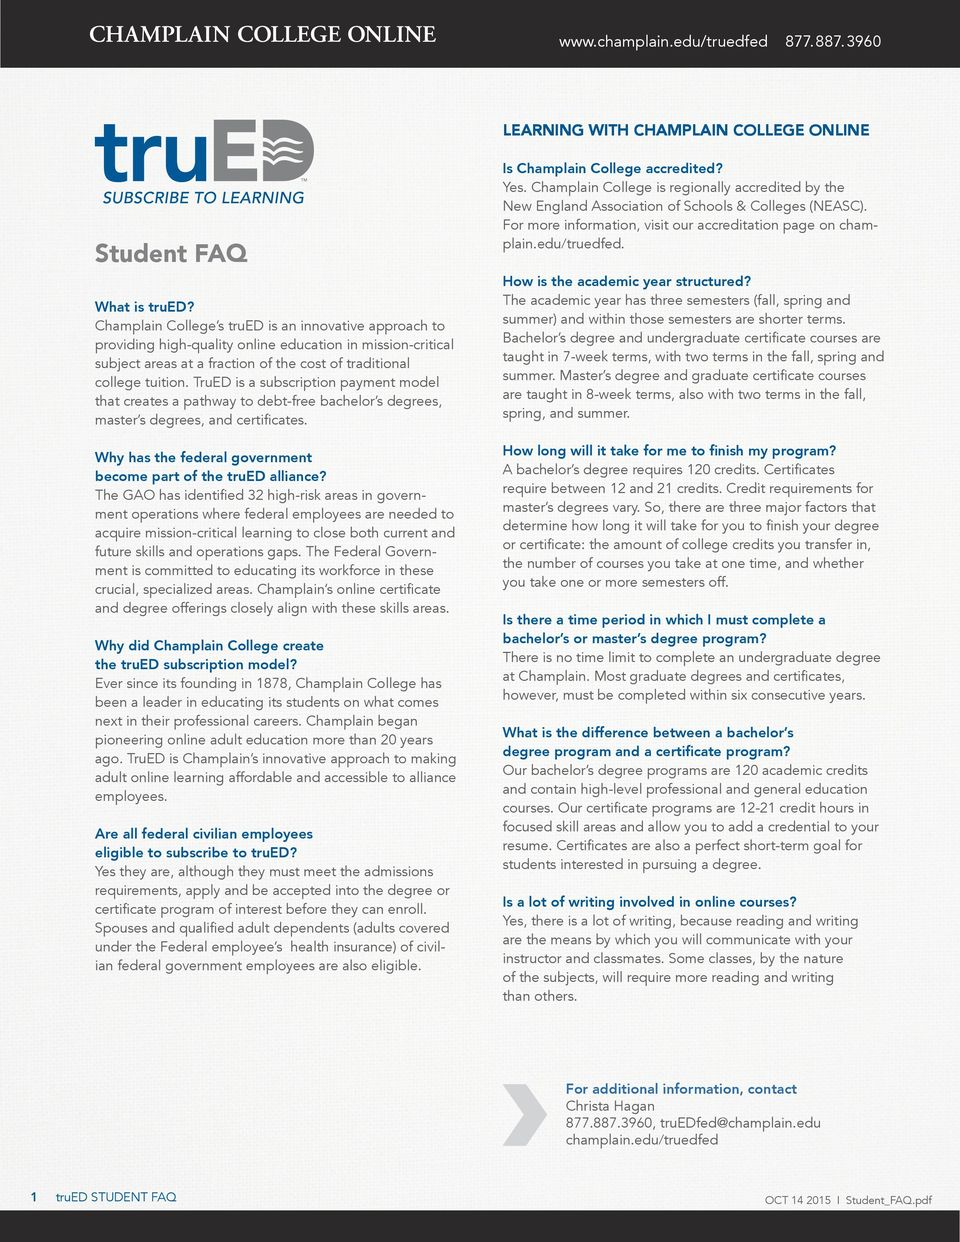 TruED is a subscription payment model that creates a pathway to debt-free bachelor s degrees, master s degrees, and certificates. Why has the federal government become part of the trued alliance?